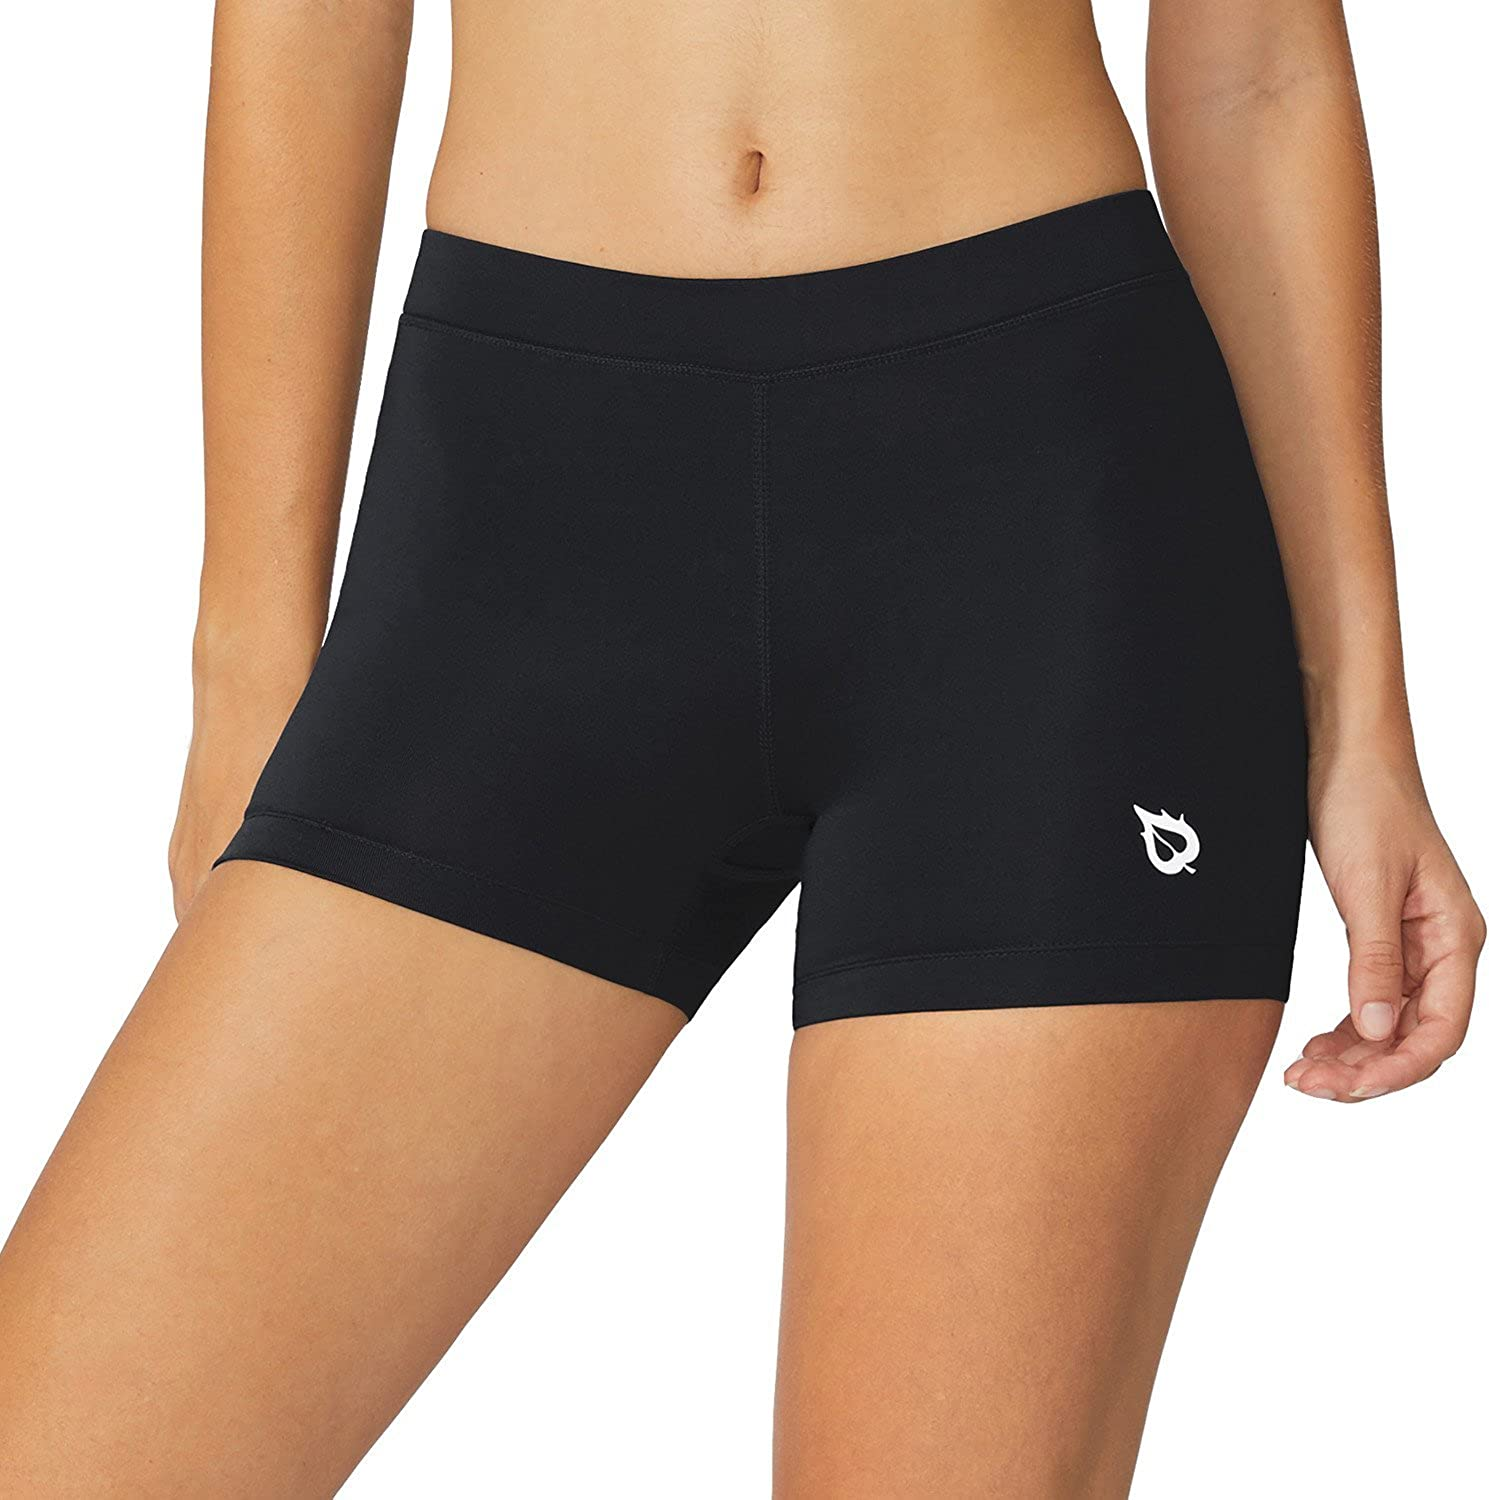 BALEAF Women's 3 Inches Active Fitness Compression Volleyball Shorts Workout Spandex : Clothing